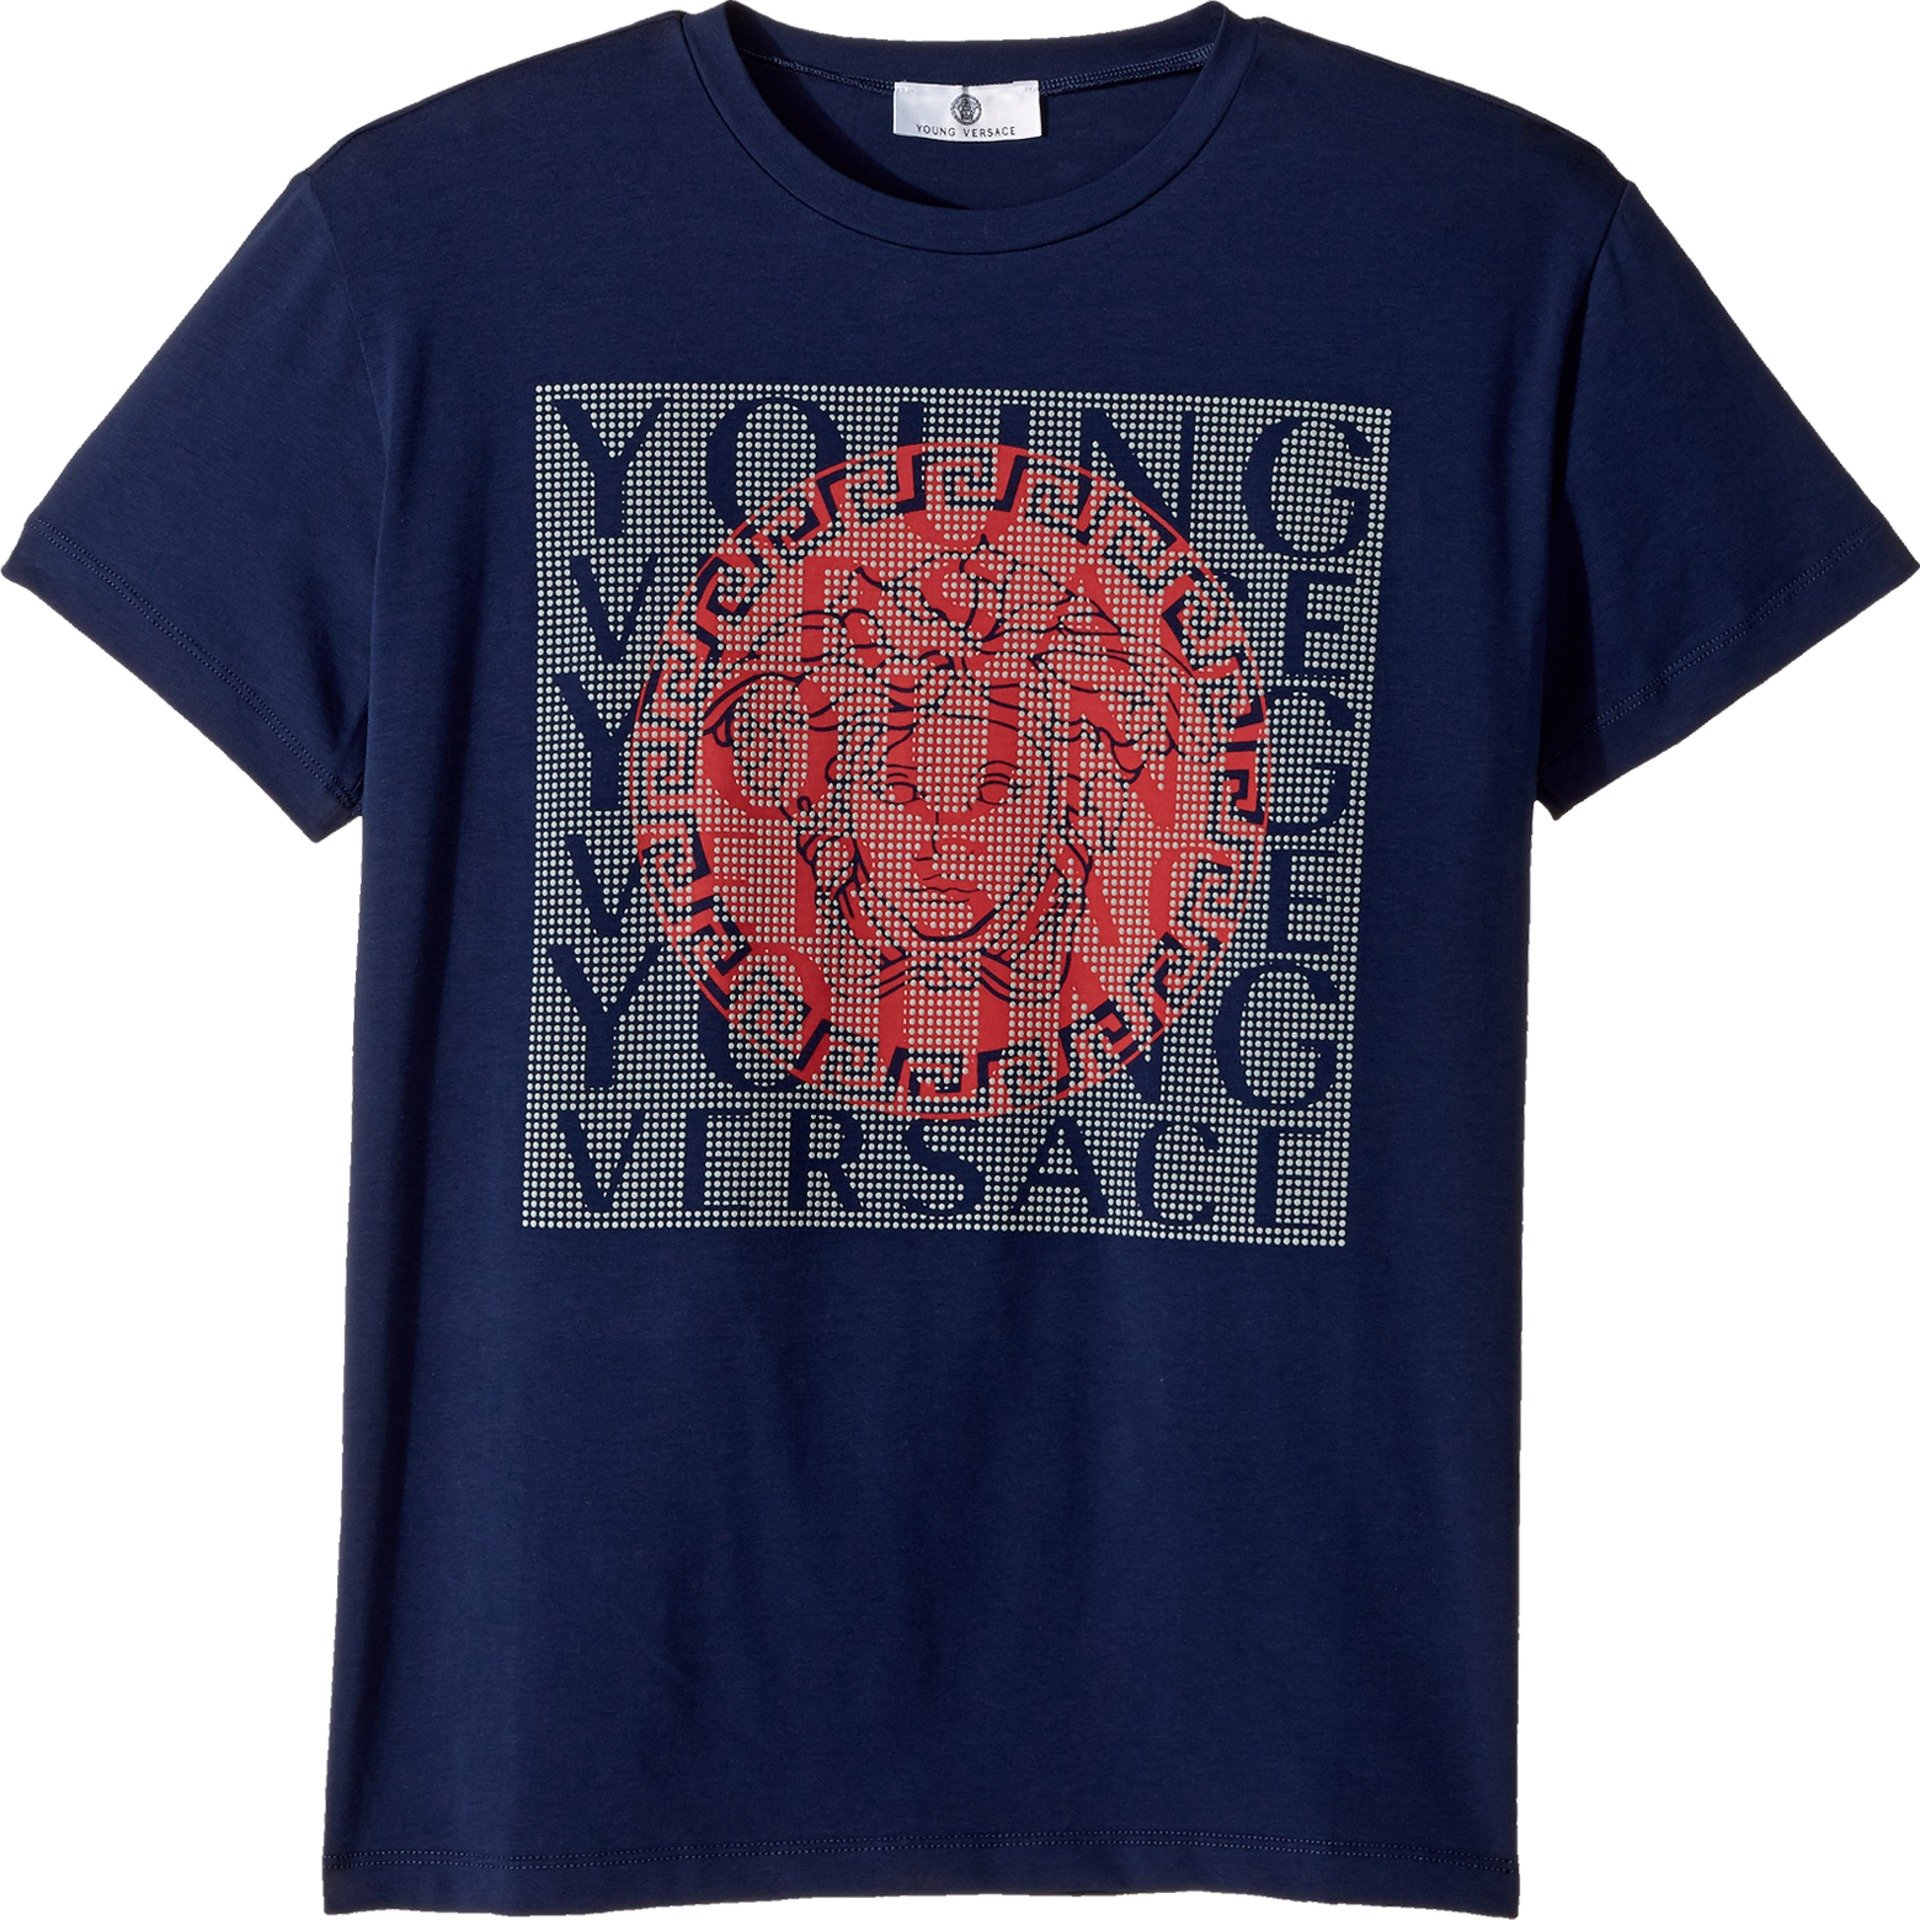 Versace Kids Boy's Short Sleeve T-Shirt w/Medusa Logo Design On Front (Big Kids) Blue 11-12 Big Kids by Versace